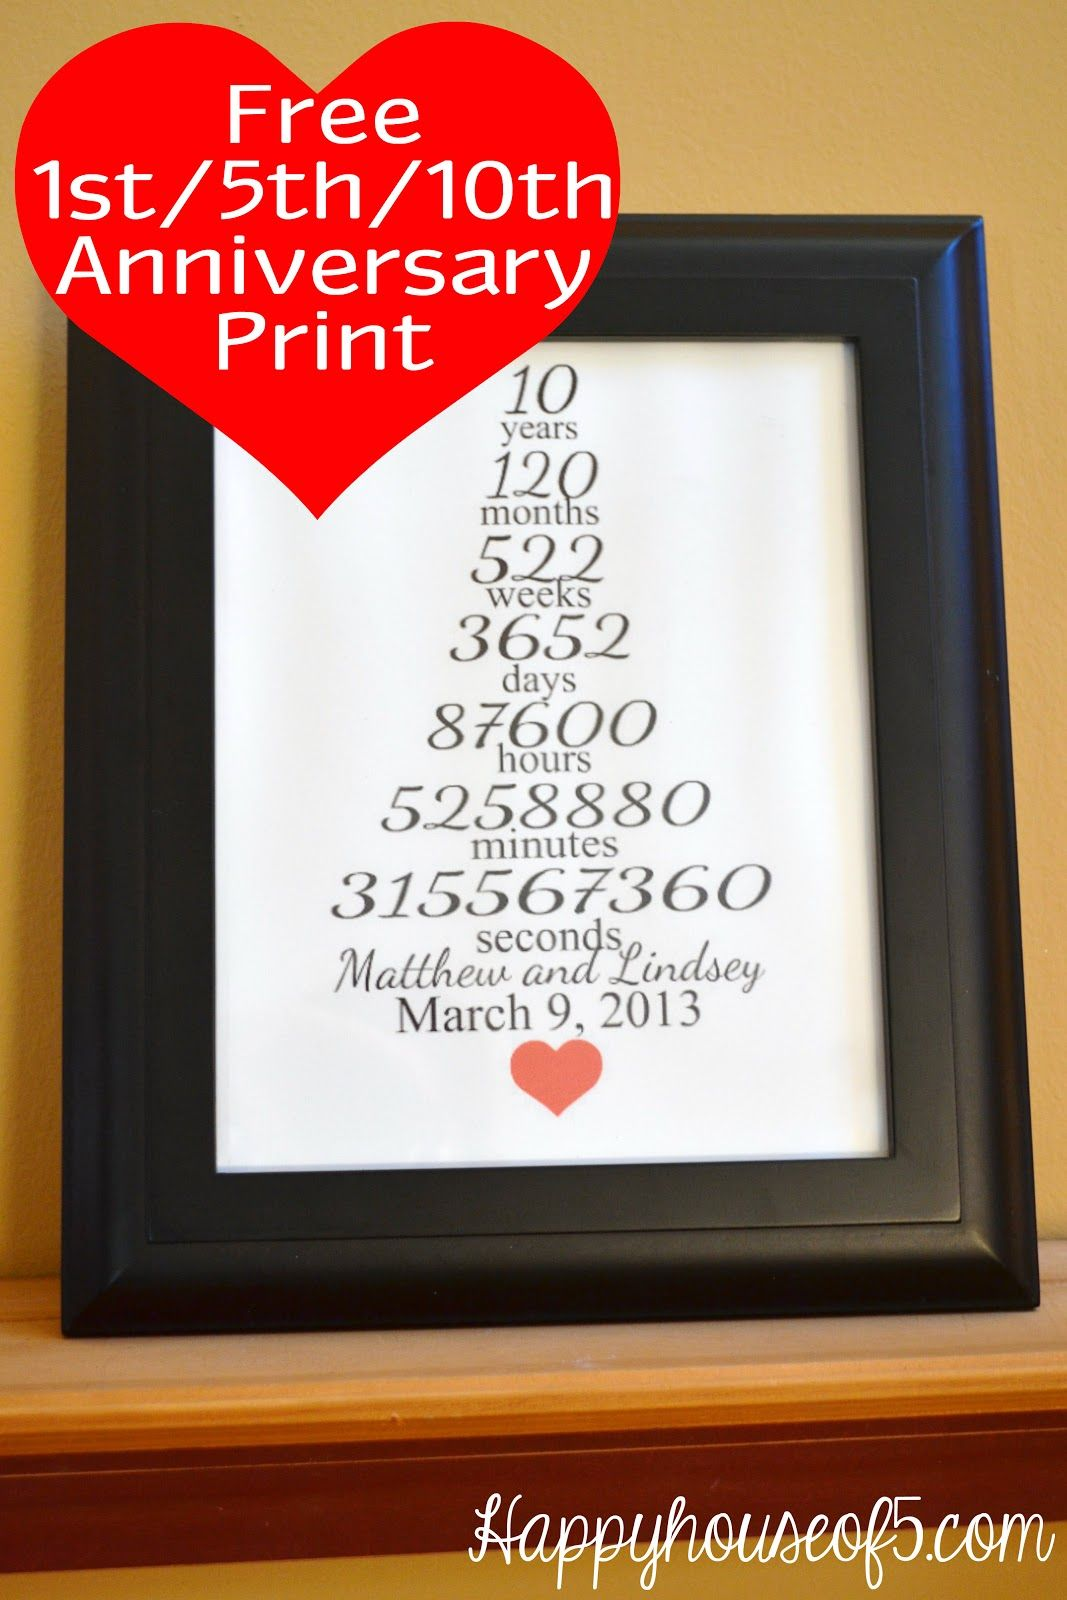 Free 1st 5th 10th Anniversary Printable Happyhouseof5 Com Anniversary Gifts Anniversary 10th Wedding Anniversary